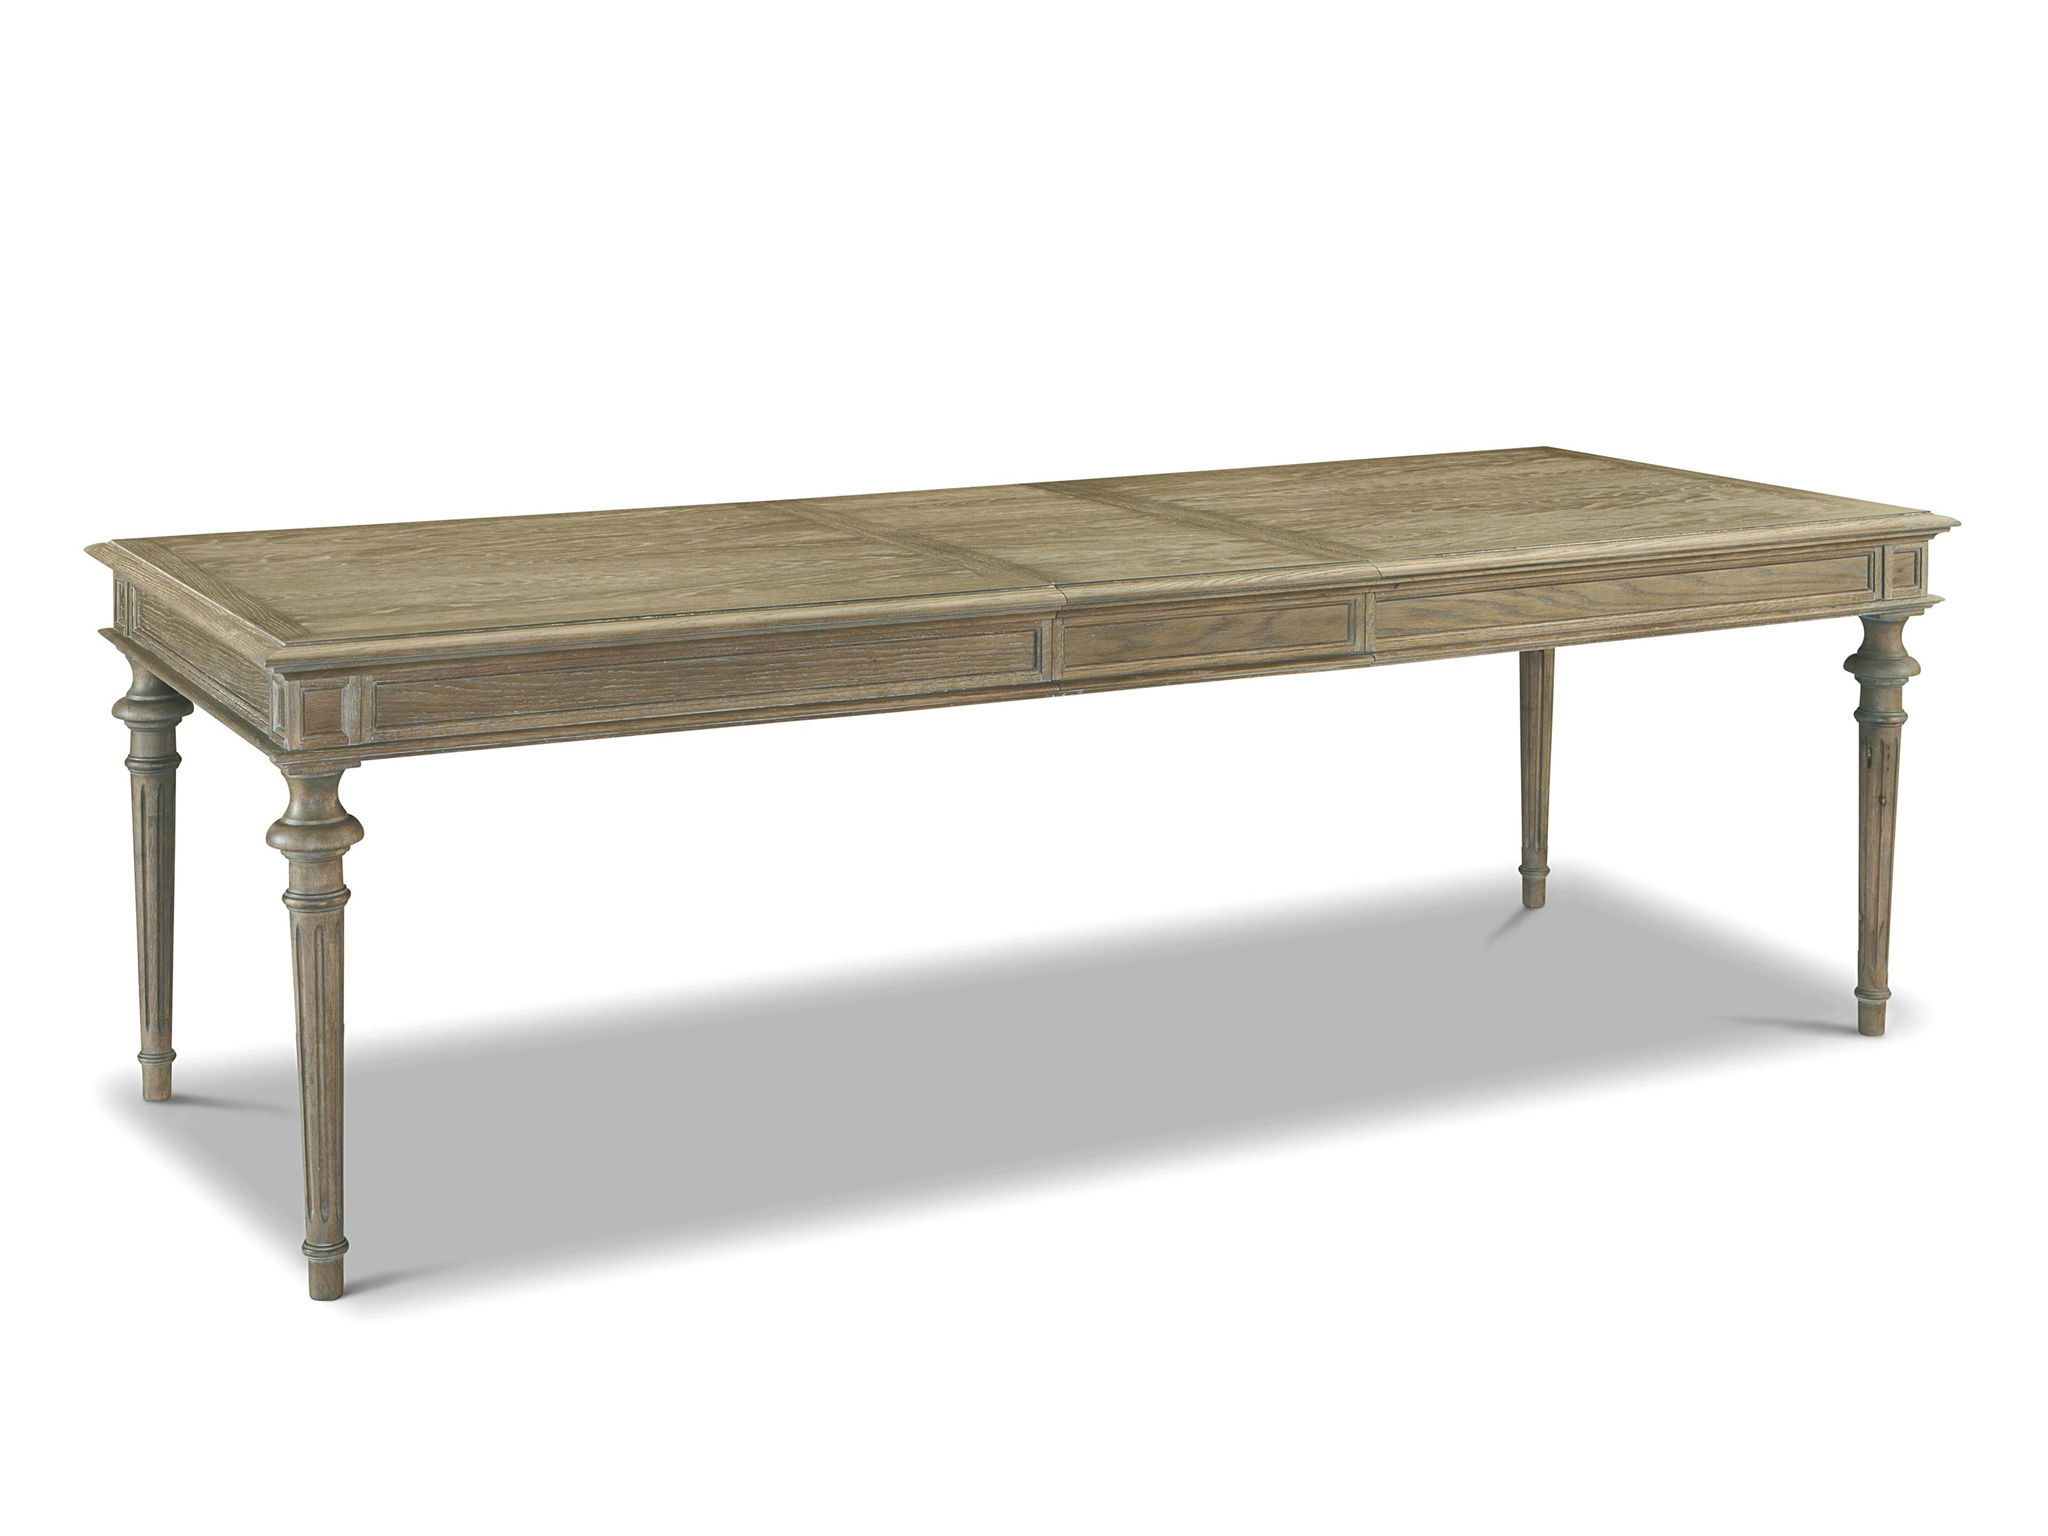 Wood Kitchen Dining Tables With Removable Center Leaf Within Newest Universal – Curated (Gallery 11 of 30)